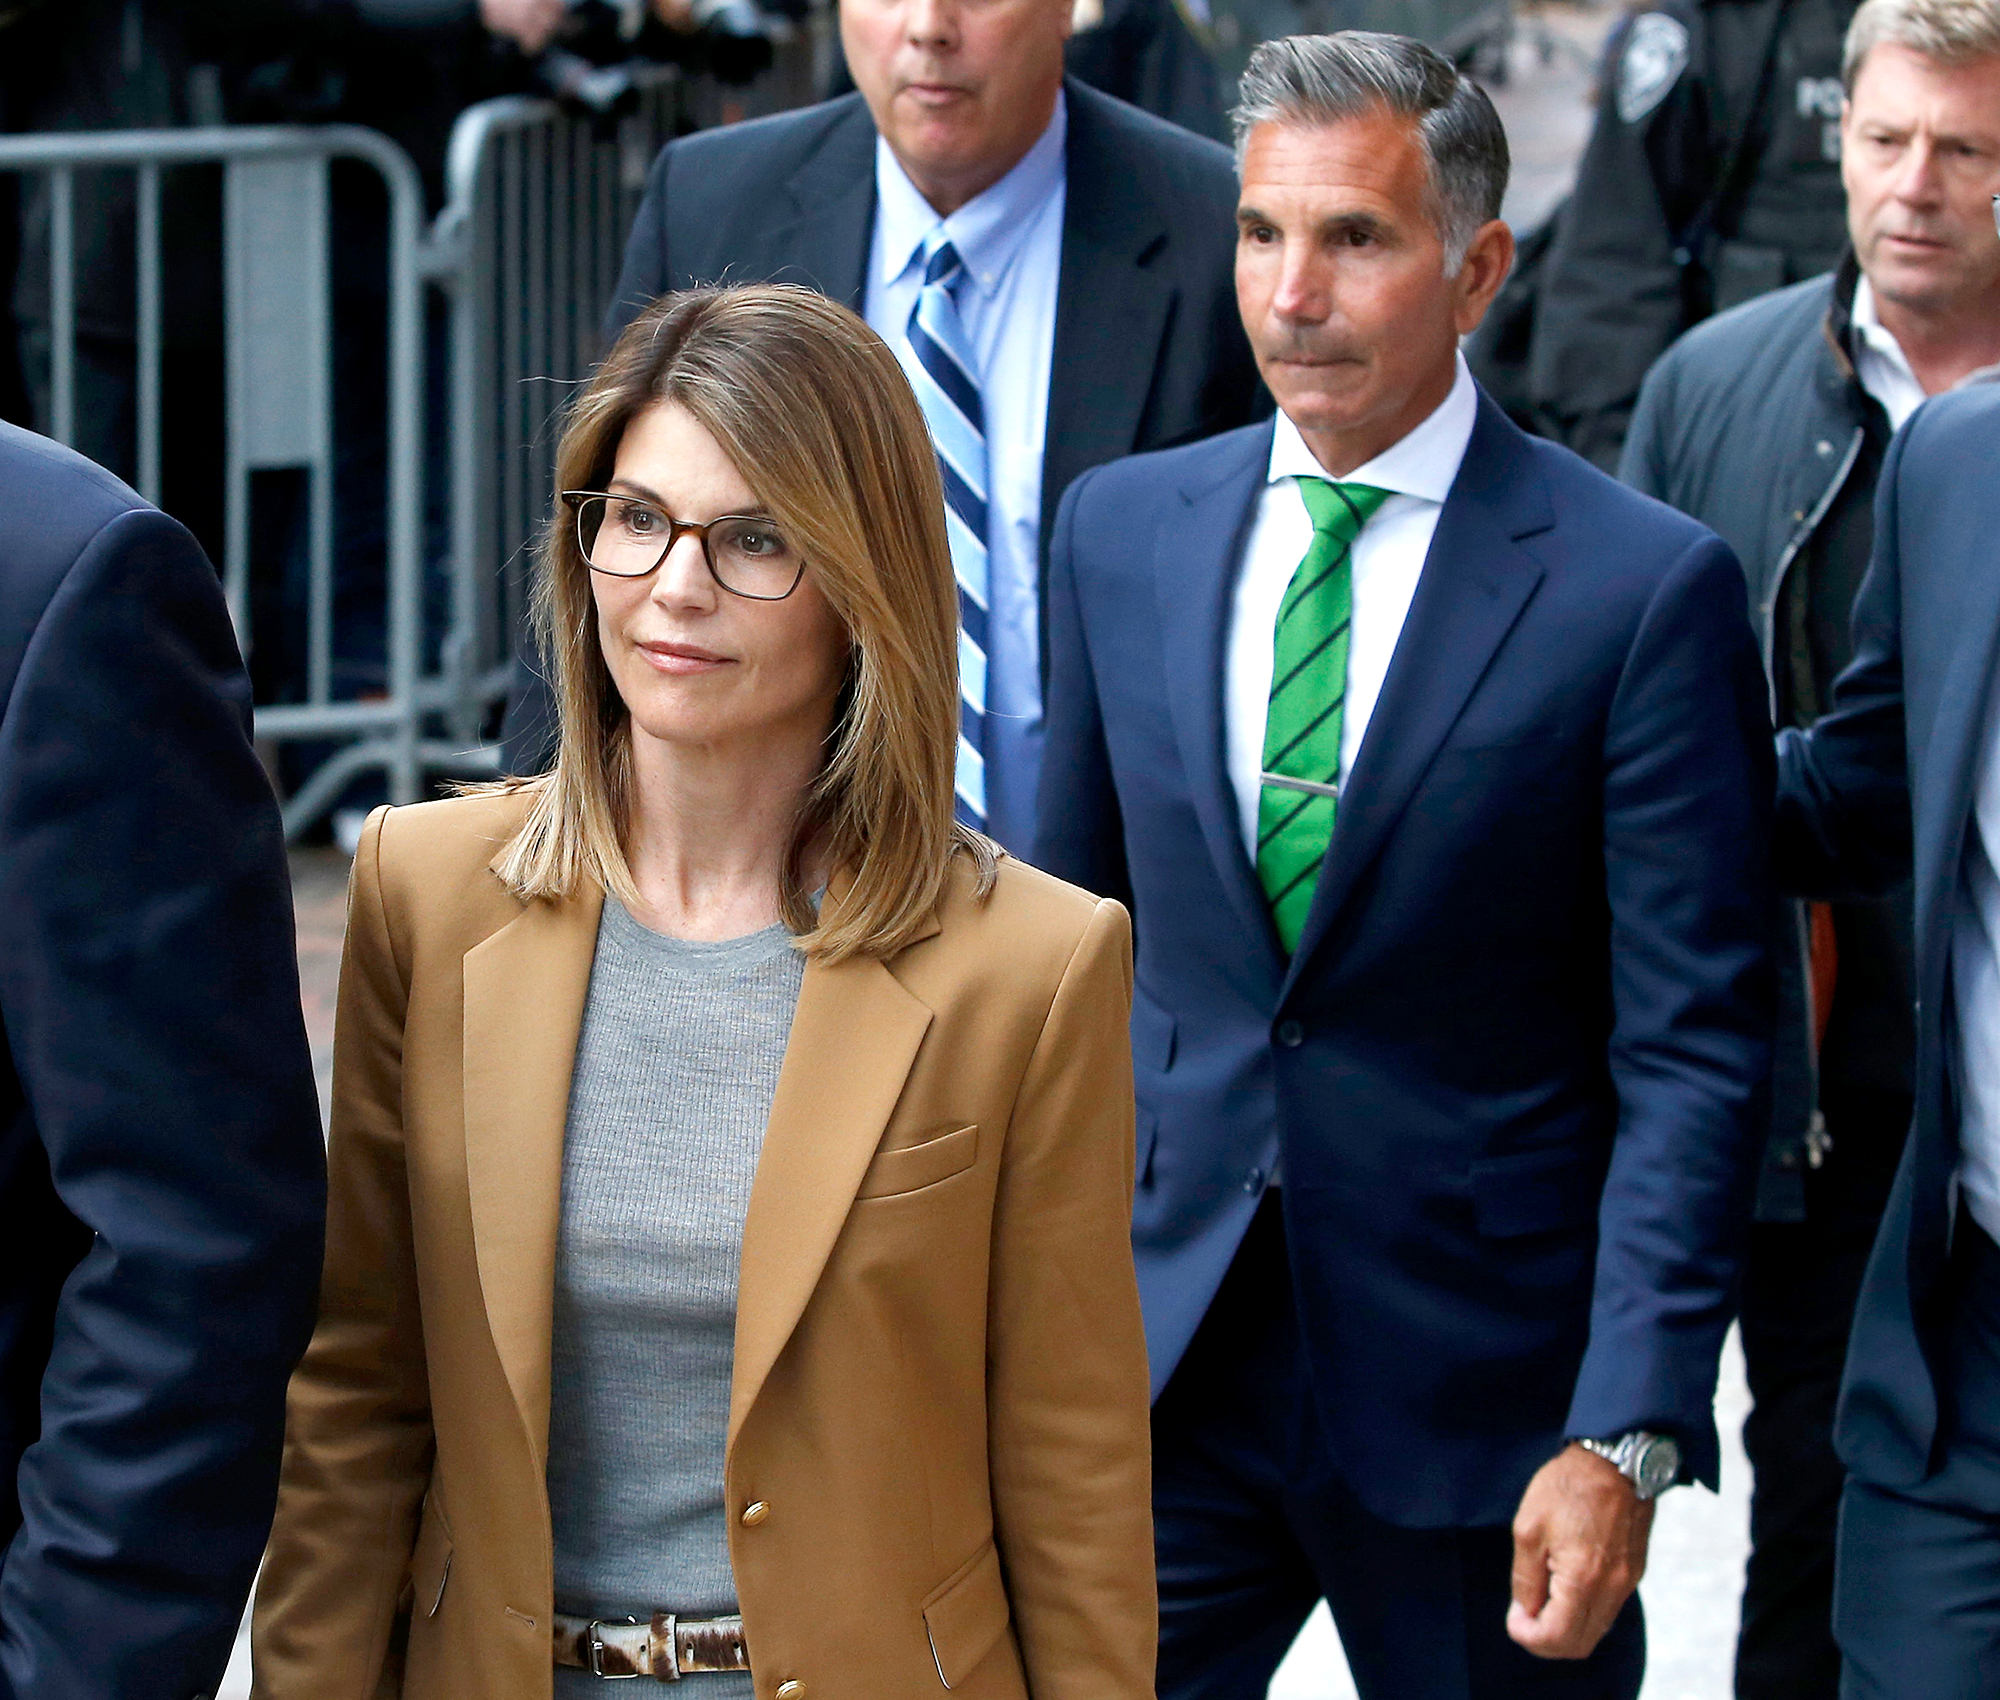 Lori-Loughlin-and-Mossimo-Giannulli-court - The couple appeared at the John Joseph Moakley United States Courthouse in Boston on April 3, 2019. The Full House alum appeared chipper, smiling as she exited a van in a tan-colored suit.